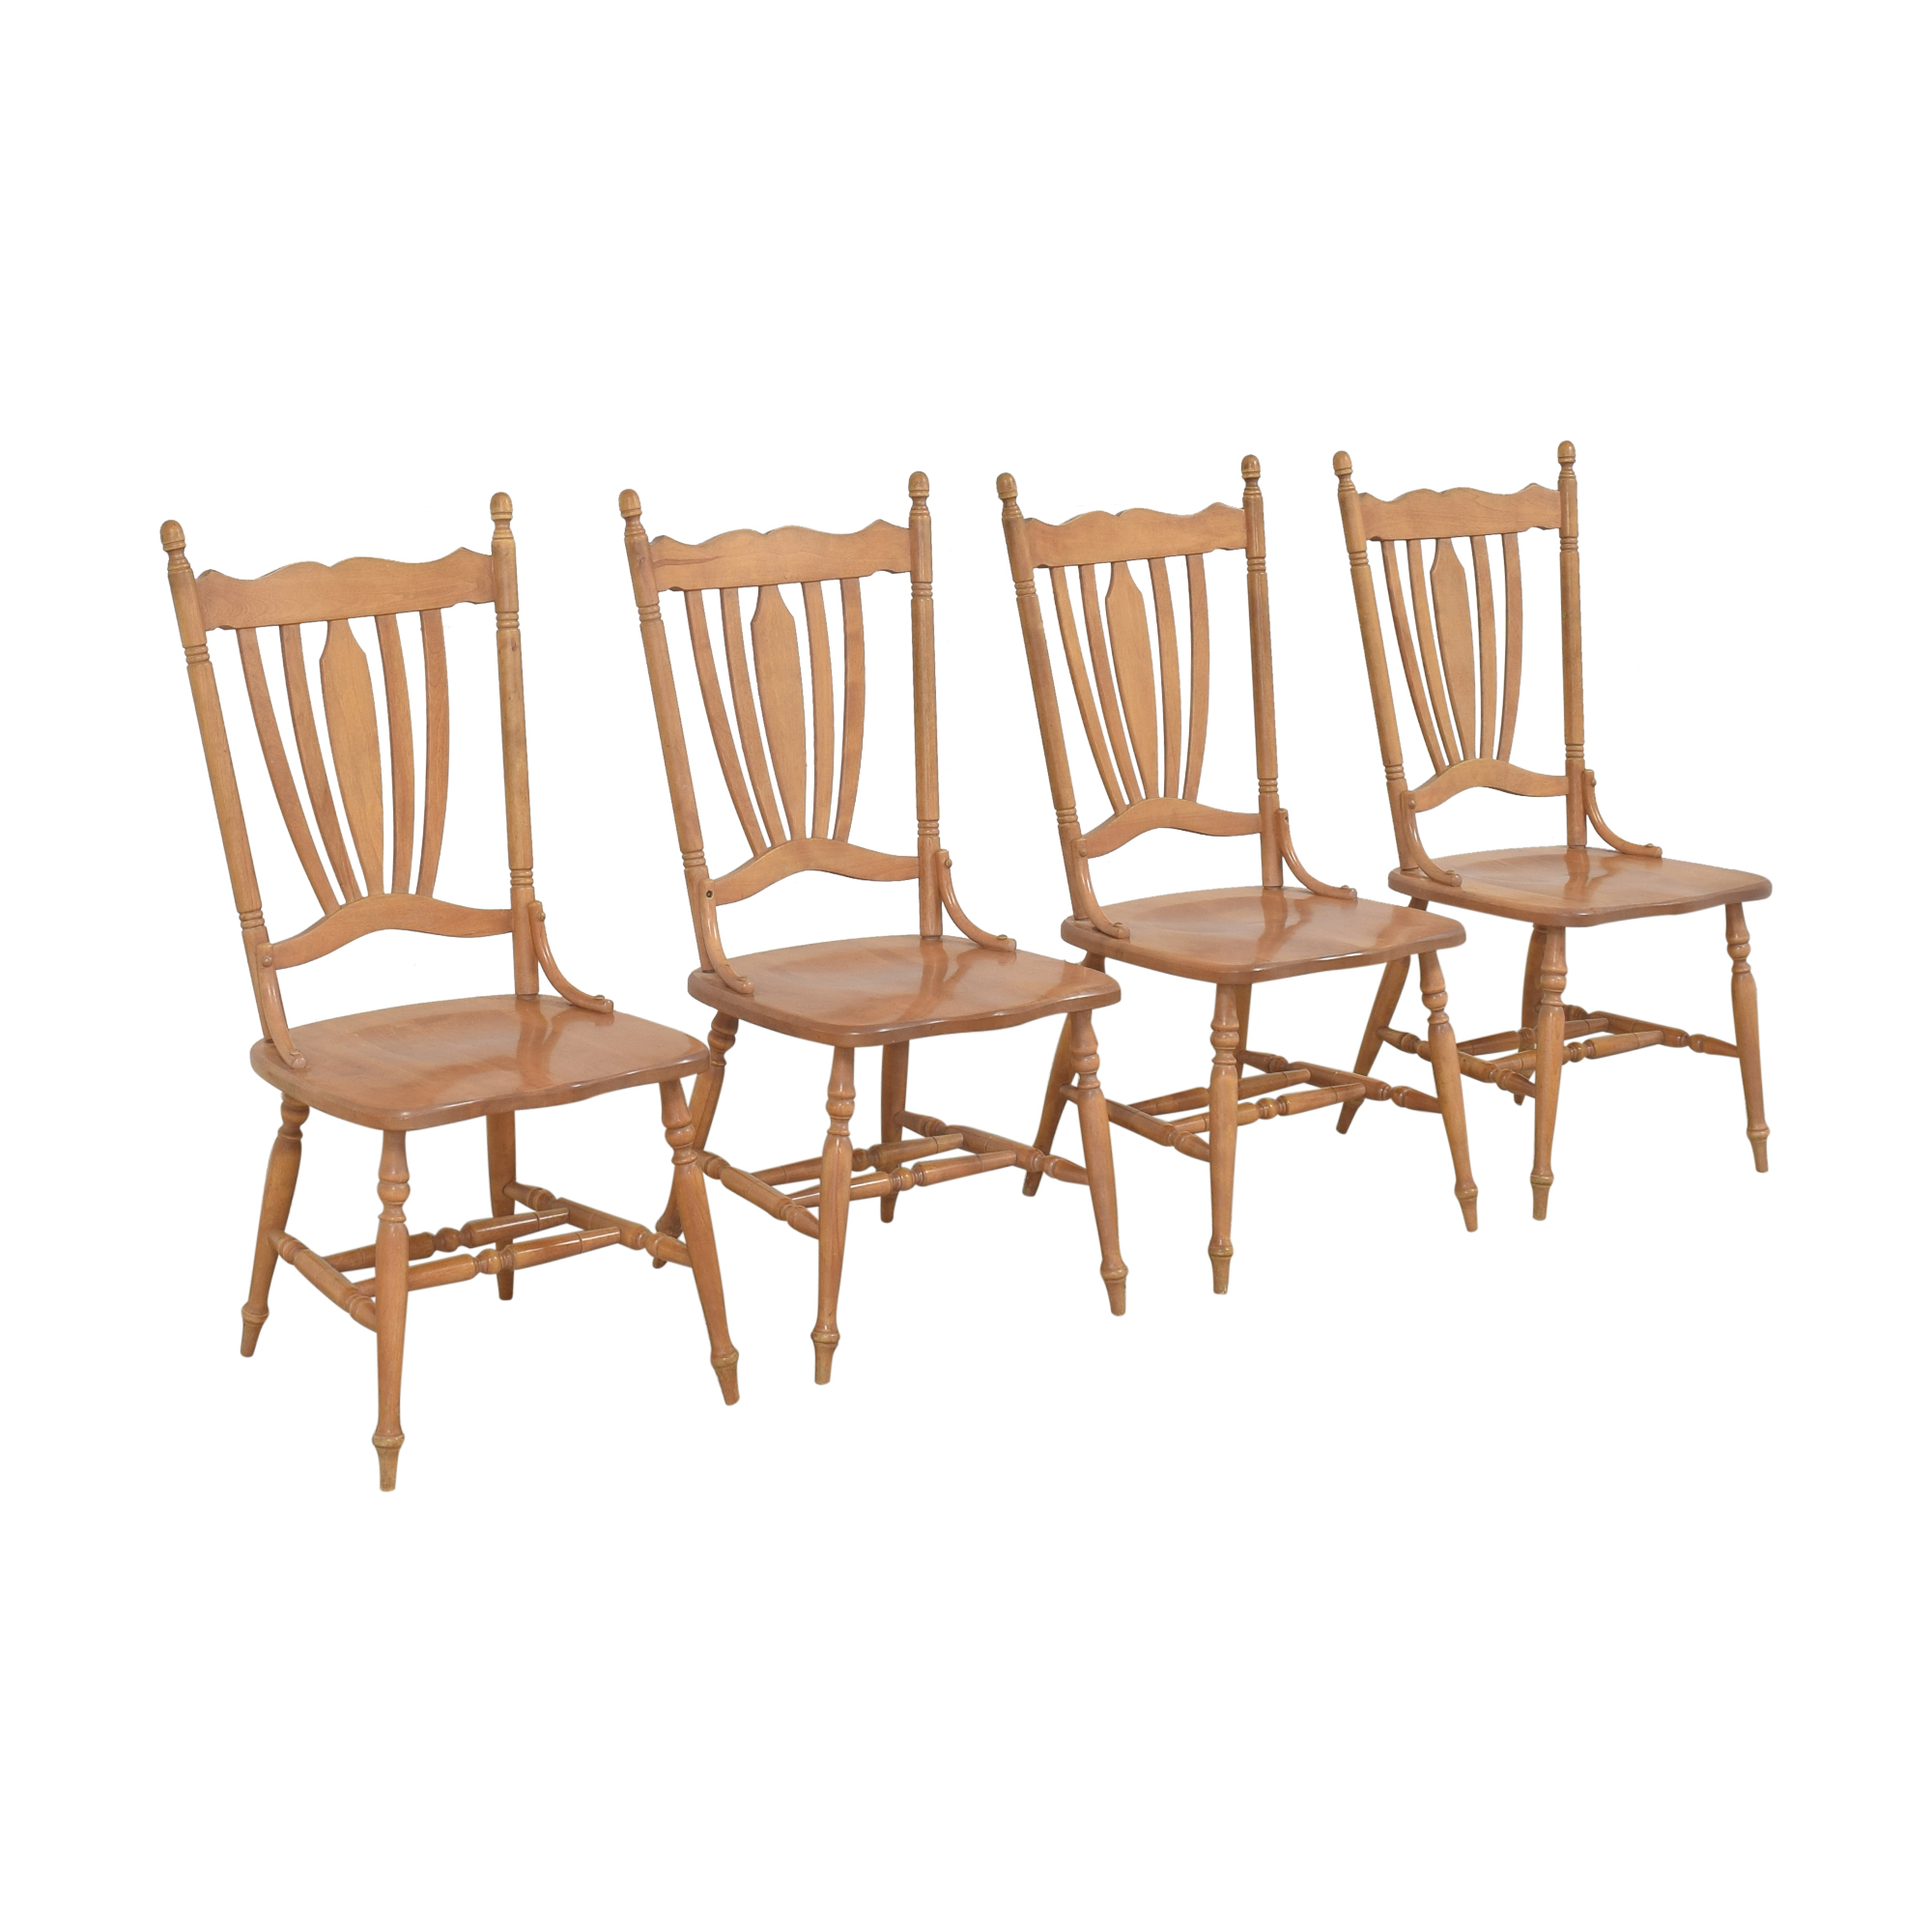 Canadel Canadel Rustic Dining Chairs discount